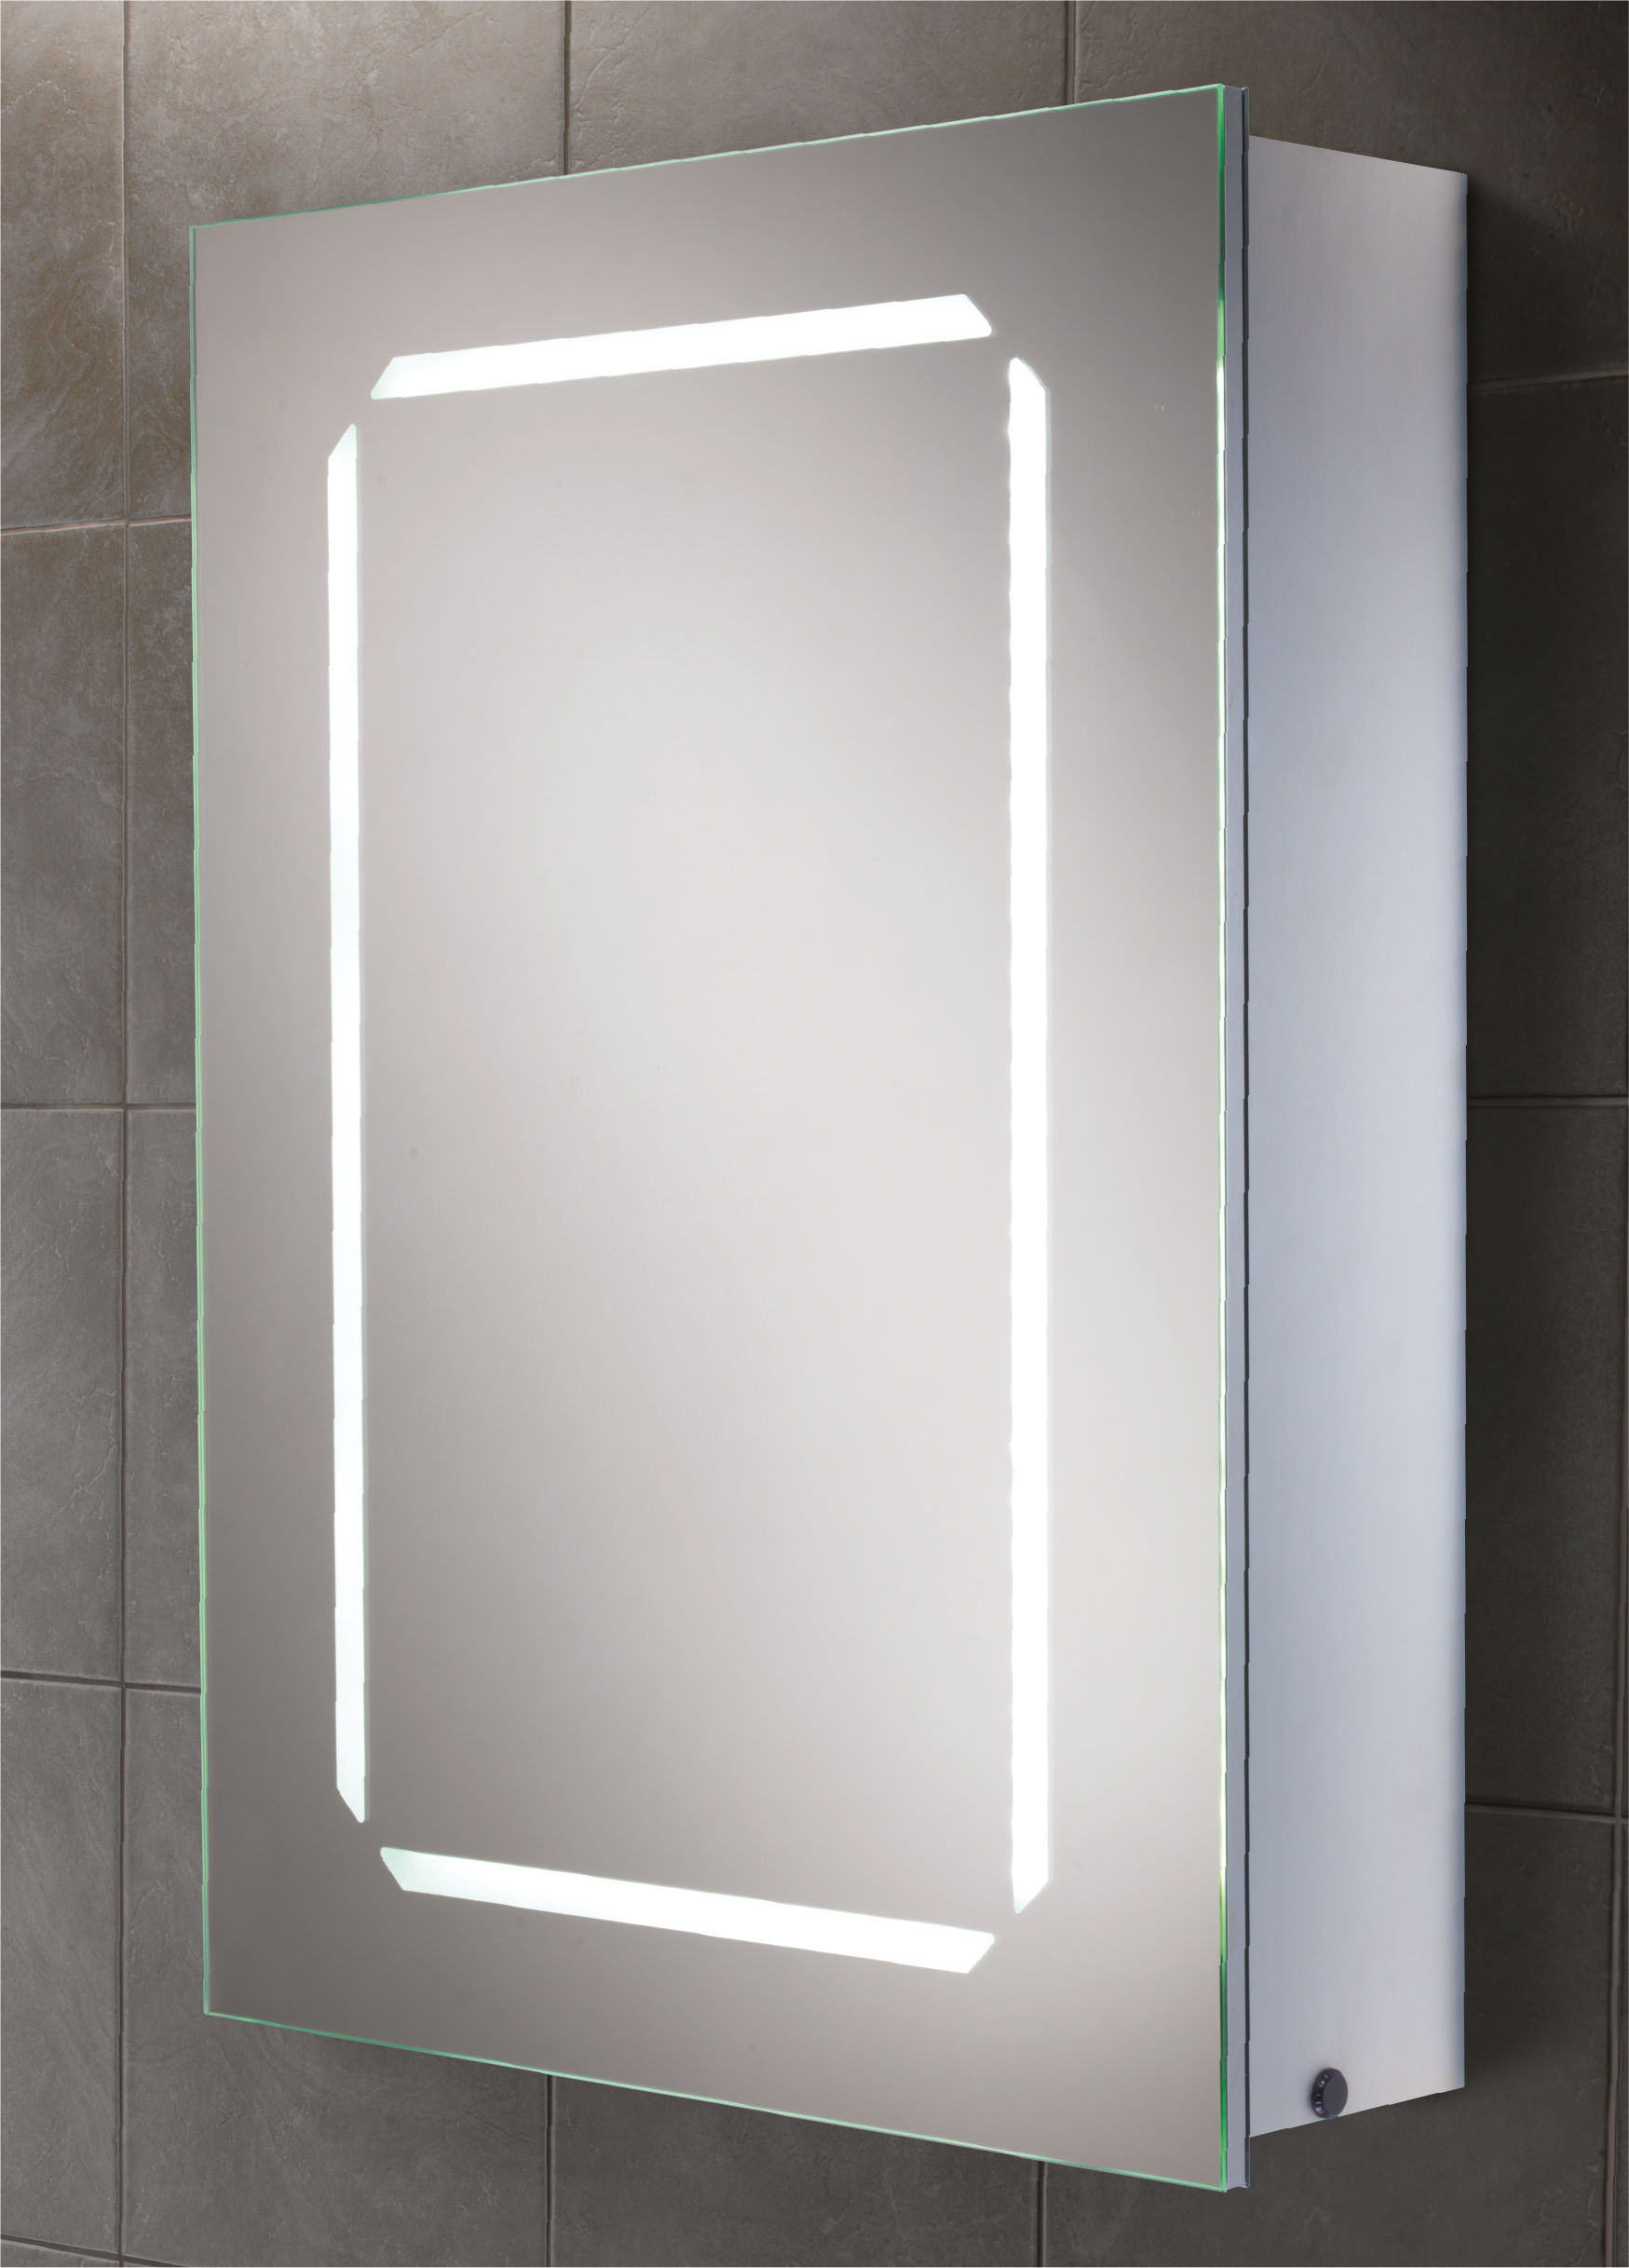 Hib Cosmic Steam Free Led Back Lit Aluminium Mirrored